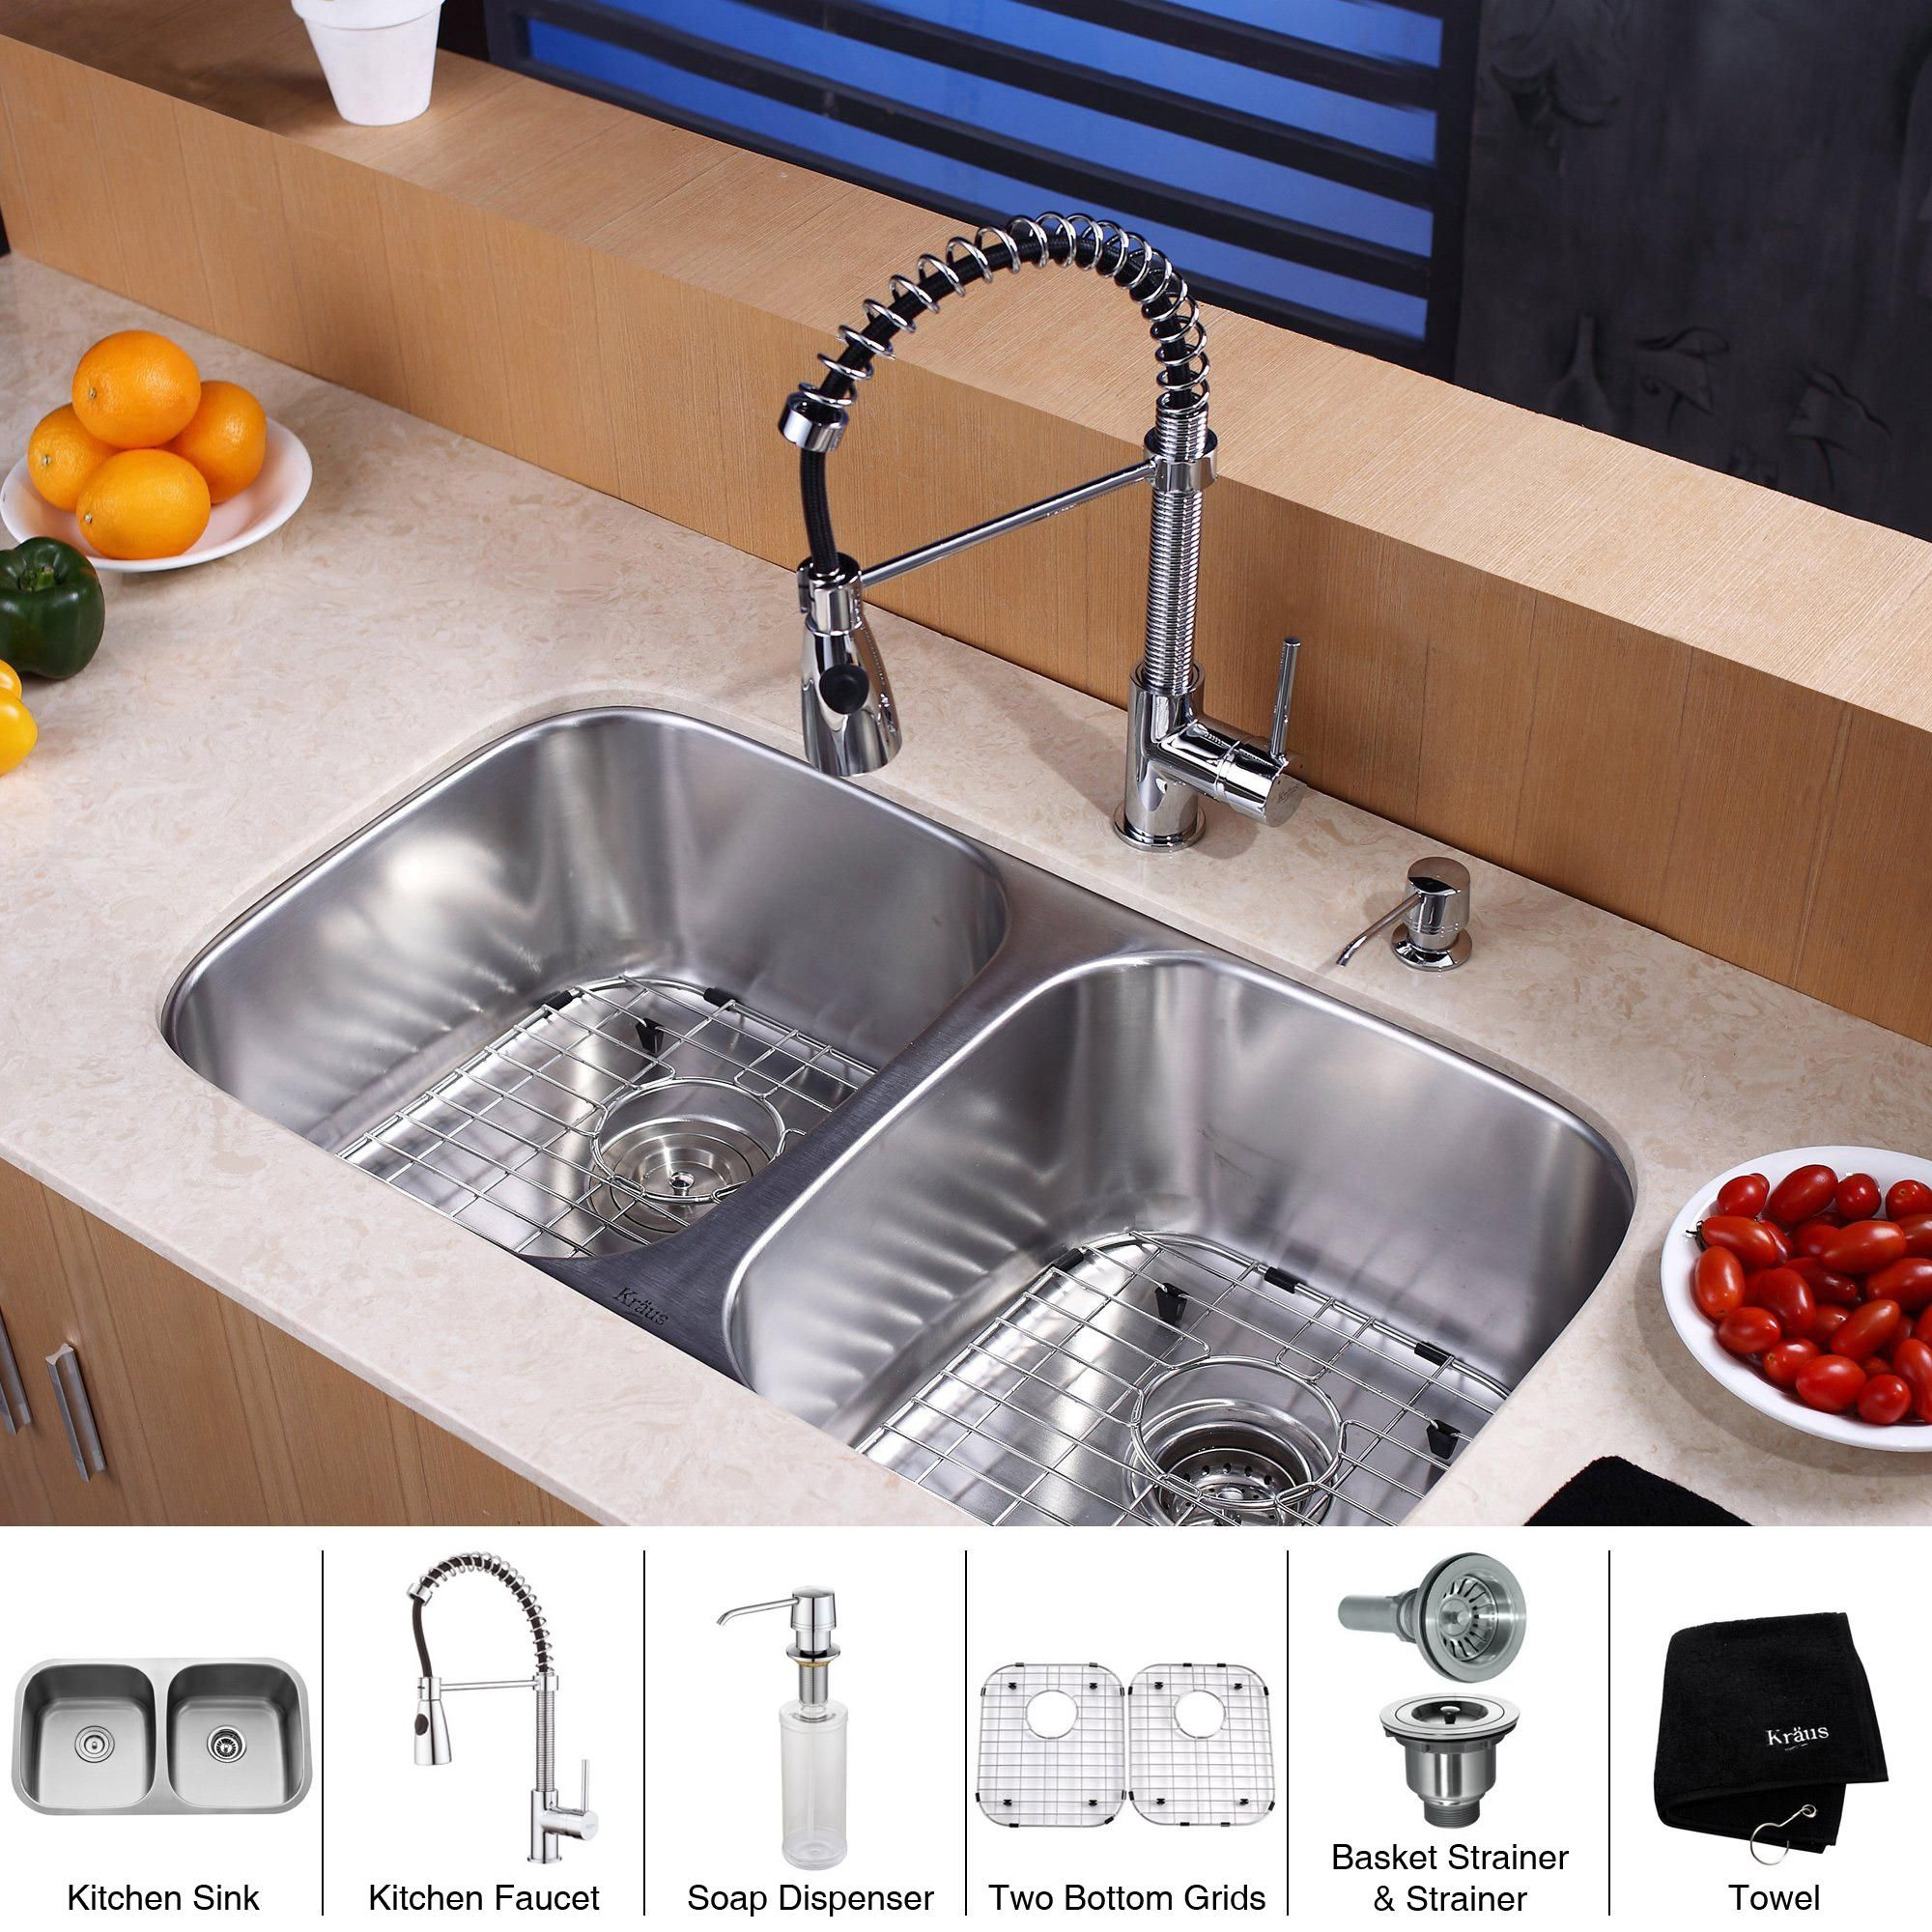 Kraus 32 Inch Undermount Double Bowl Stainless Steel Silver Kitchen Sink With Commercial Style Faucet And Soap Dispenser Inches 70 30